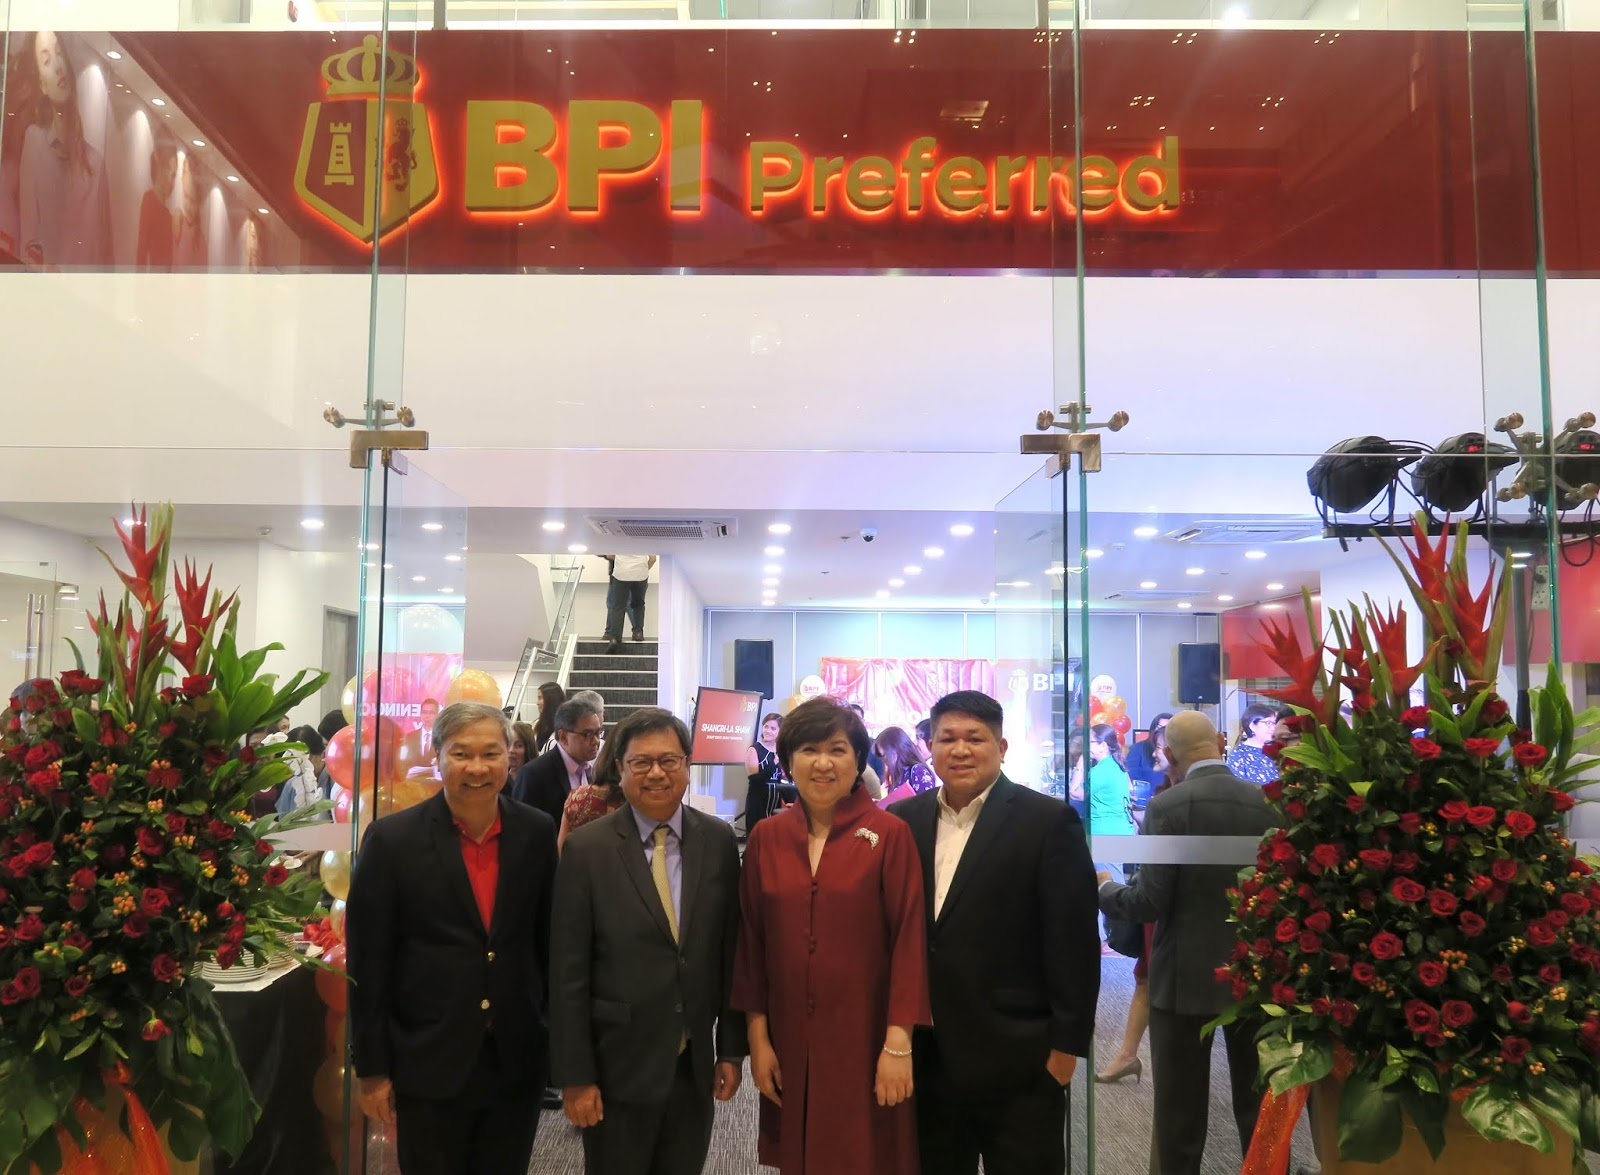 BPI opens biggest flagship branch in Northern Metro Manila